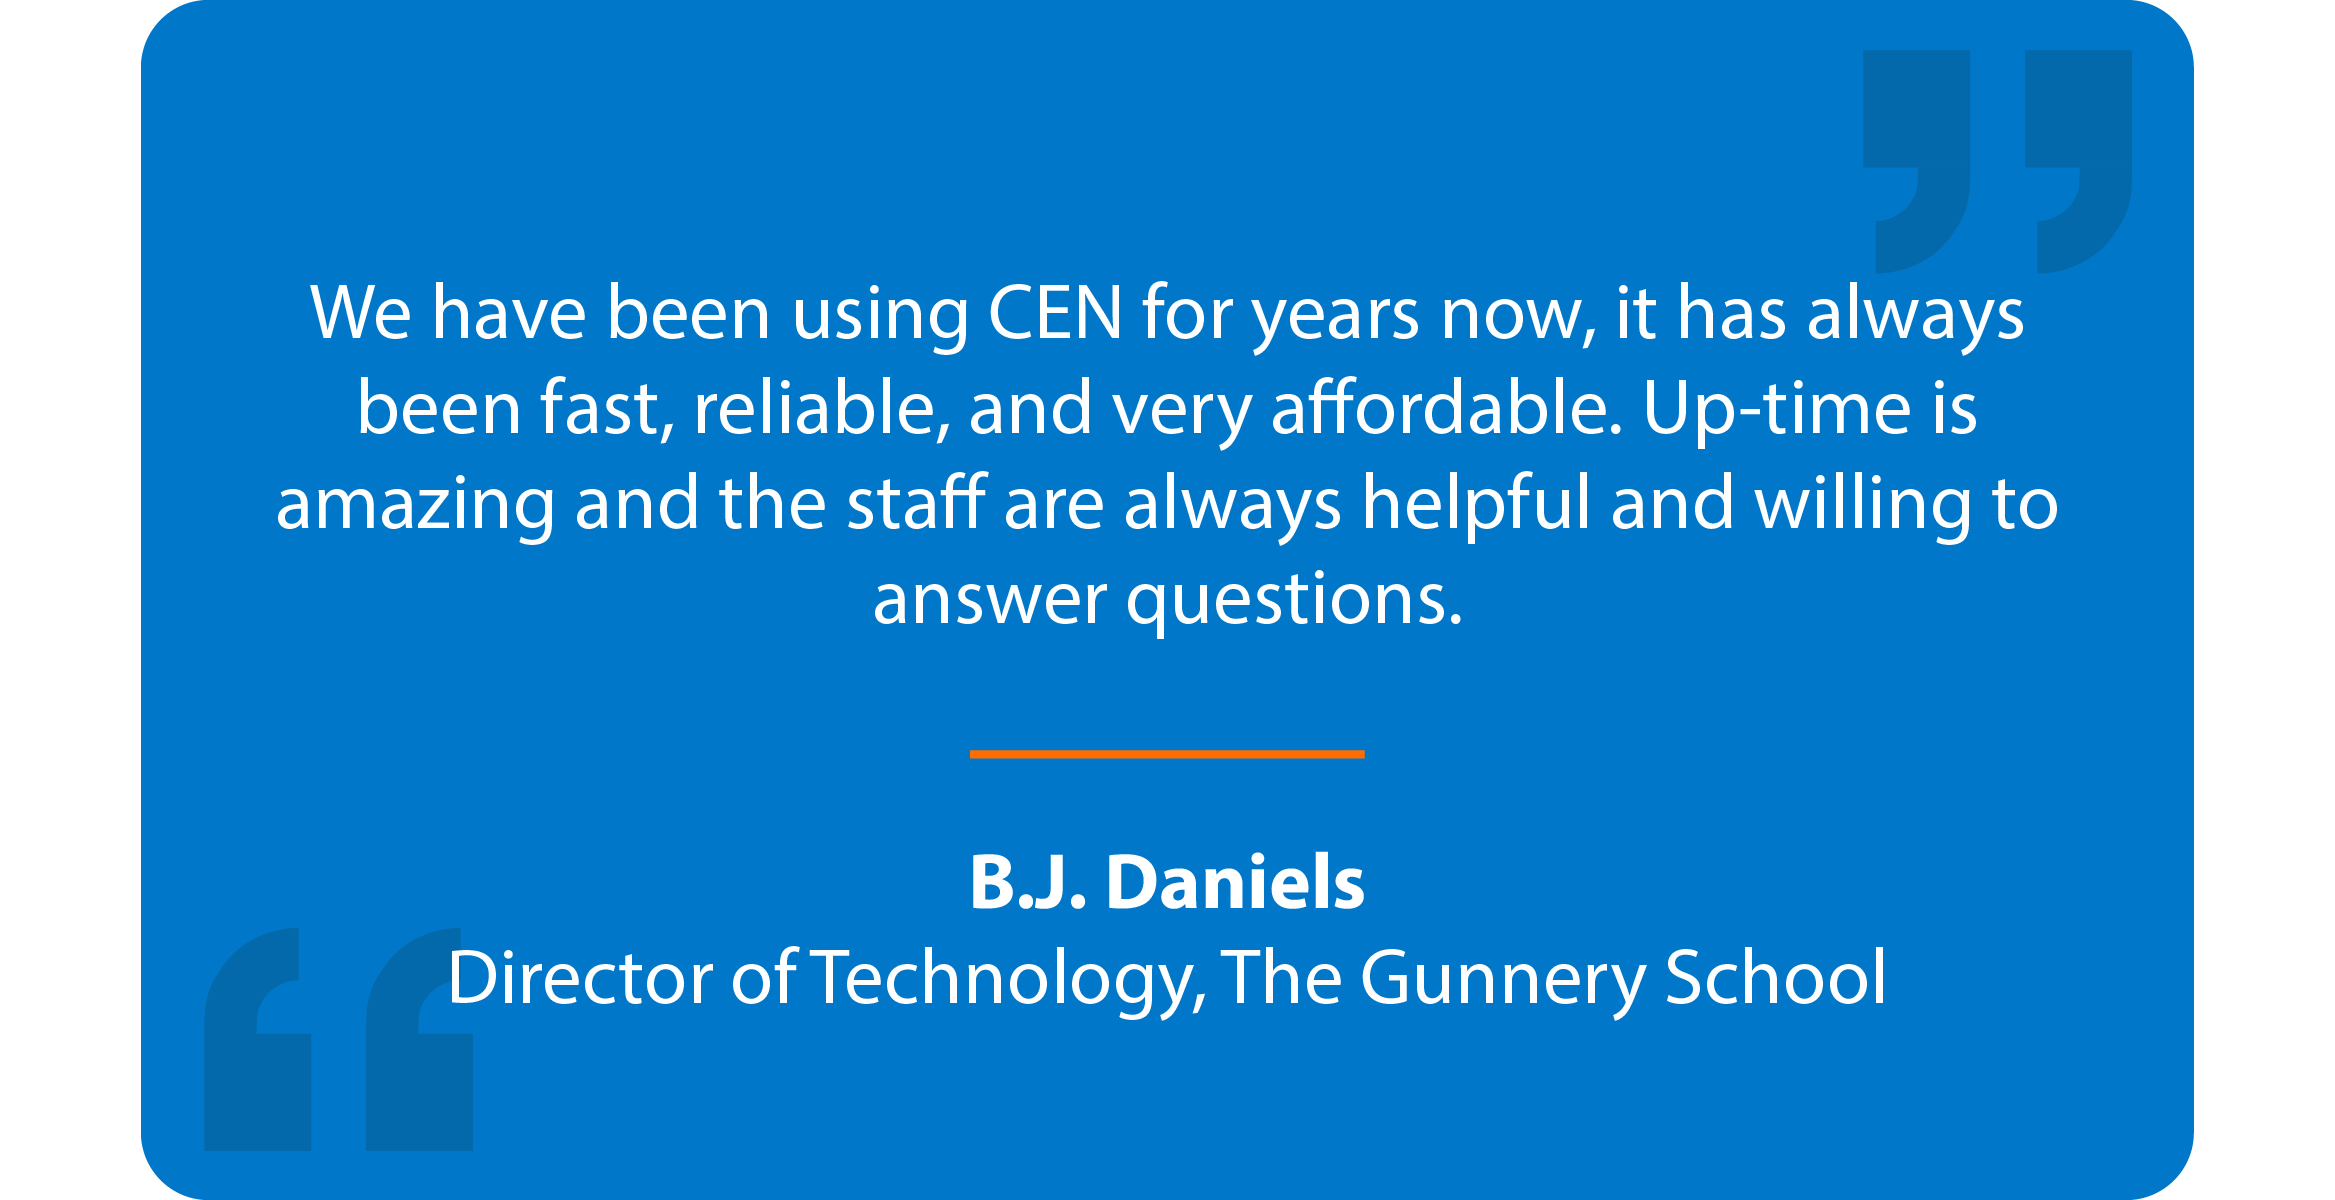 Blue box with quote that reads: We have been using CEN for years now, it has always been fast, reliable, and very affordable. Up-time is amazing and the staff are always helpful and willing to answer questions. B.J. Daniels Director of Technology, The Gunnery School